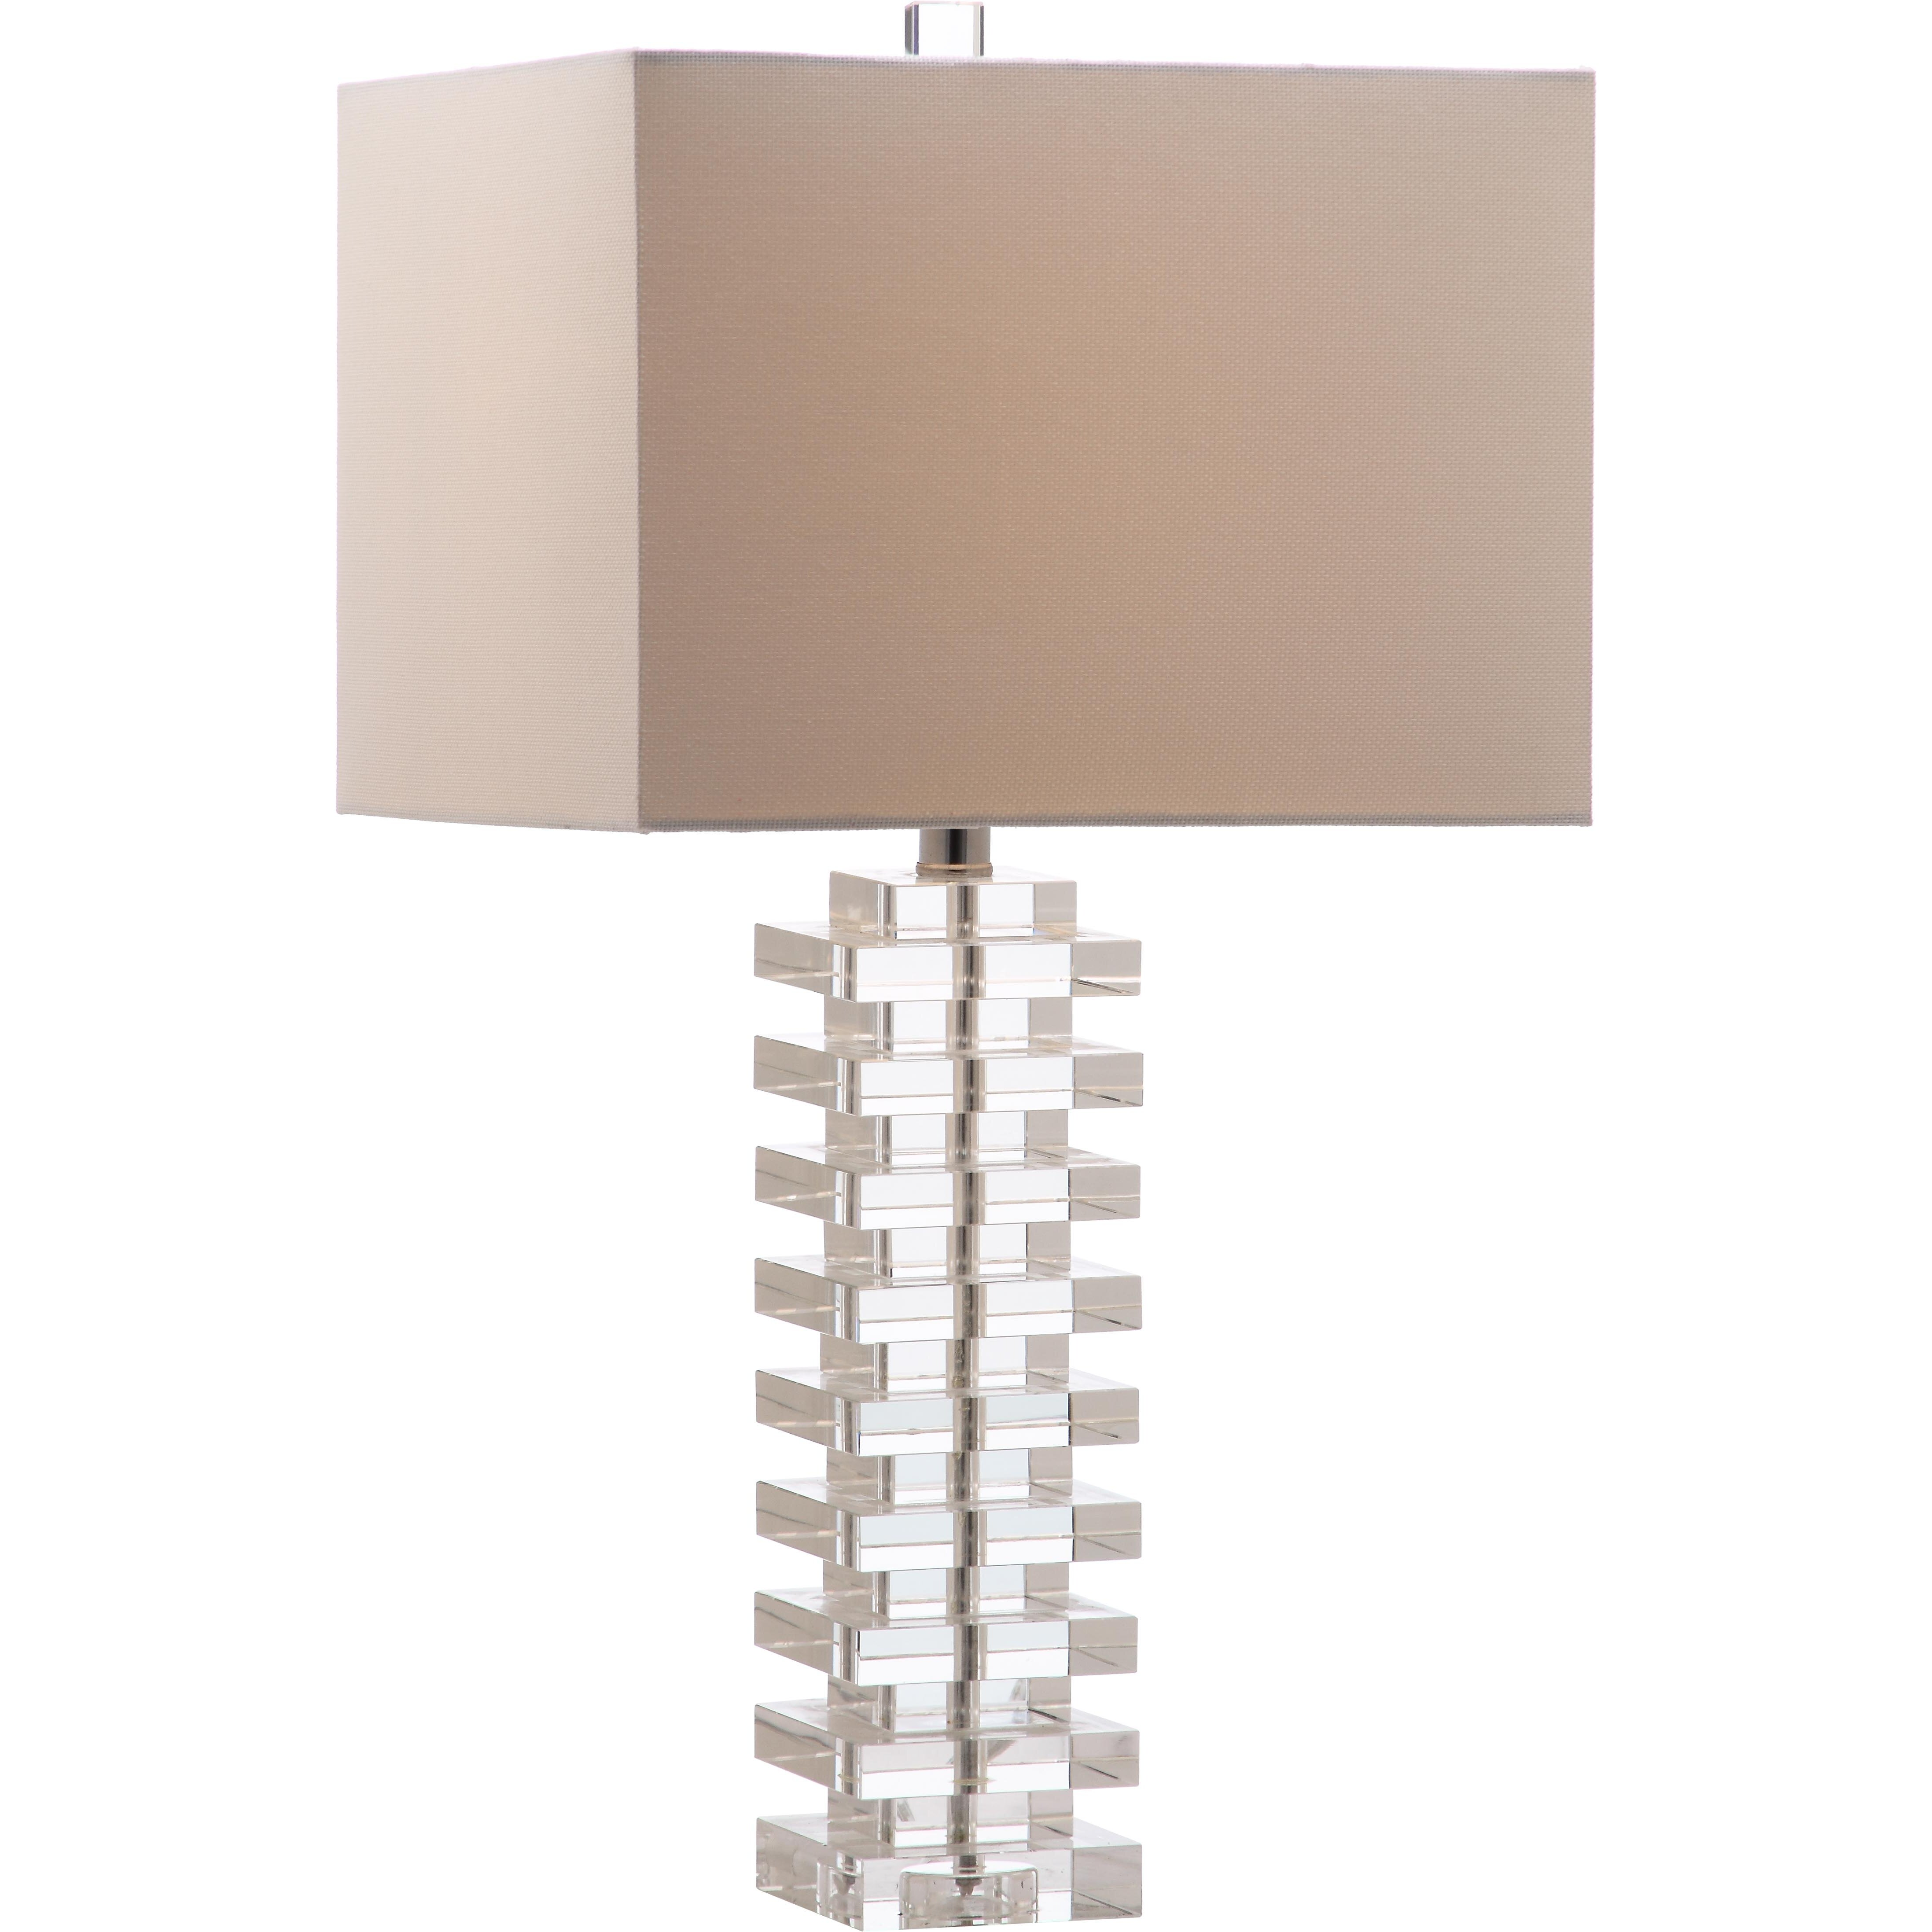 Matching floor and table lamps - Matching Floor And Table Lamps 9 Matching Floor And Table Lamps